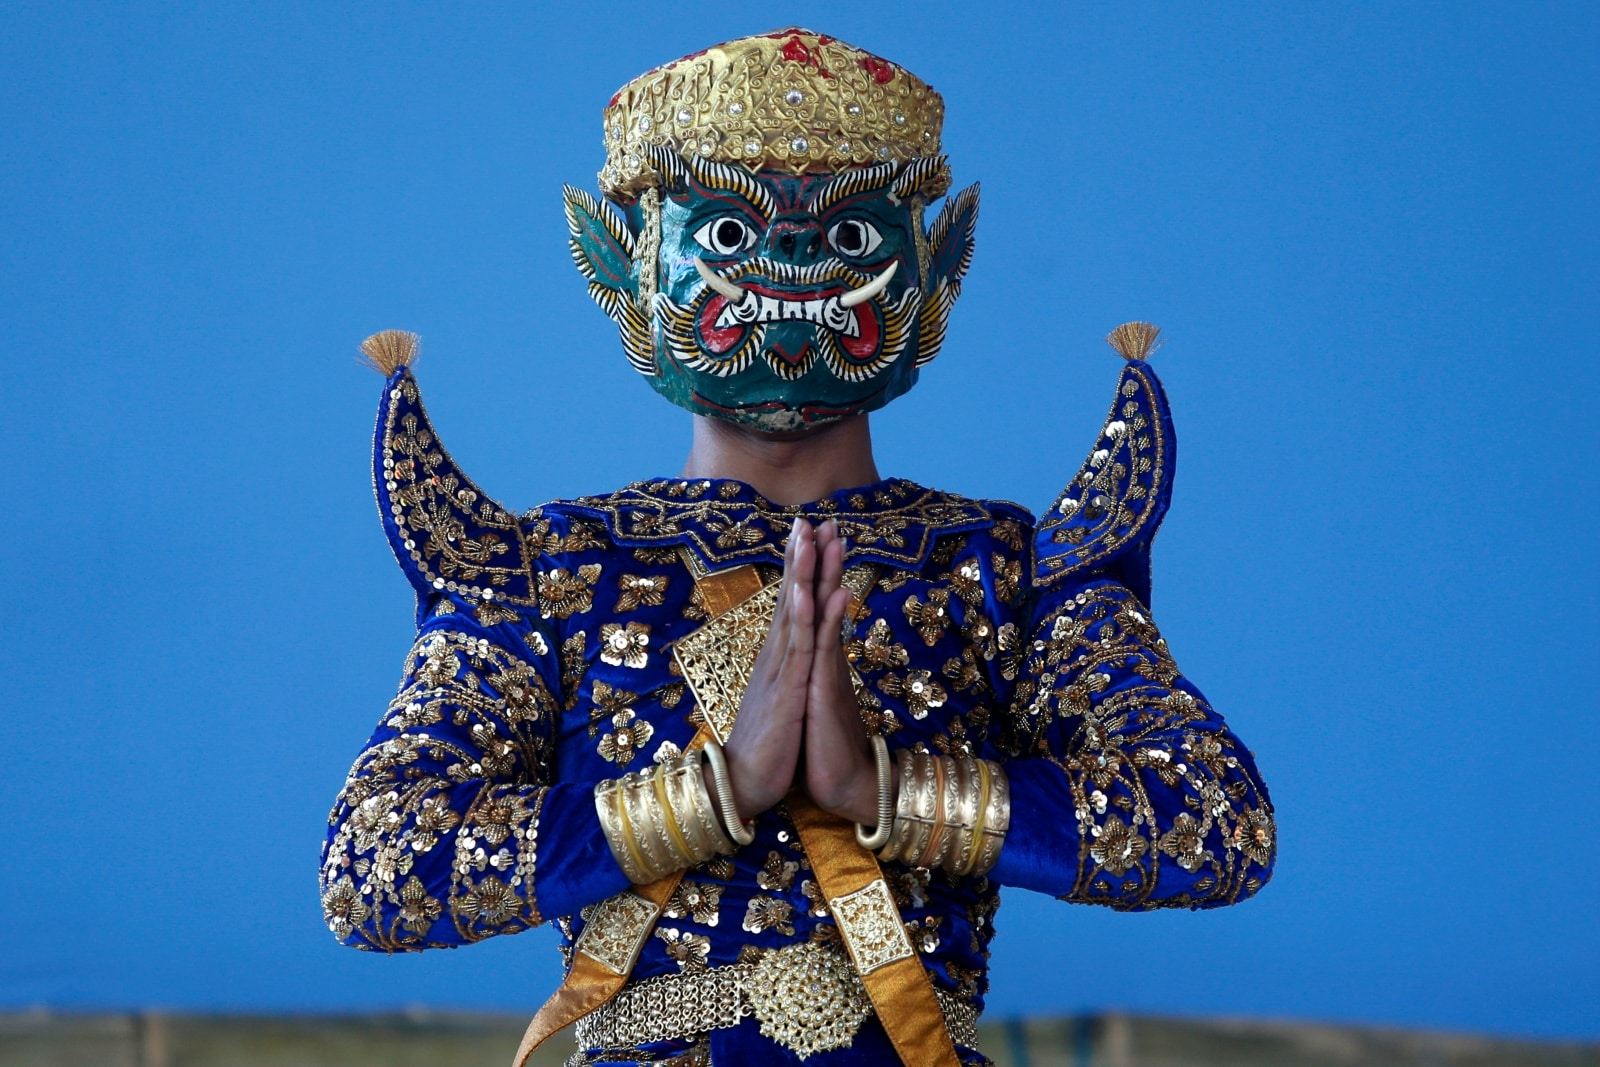 A dancer with elaborate costume posses before a performance of masked theater known as Lakhon Khol, at the Wat Svay Andet Buddhist temple in Kandal province, Cambodia December 16, 2018. REUTERS/Samrang Pring